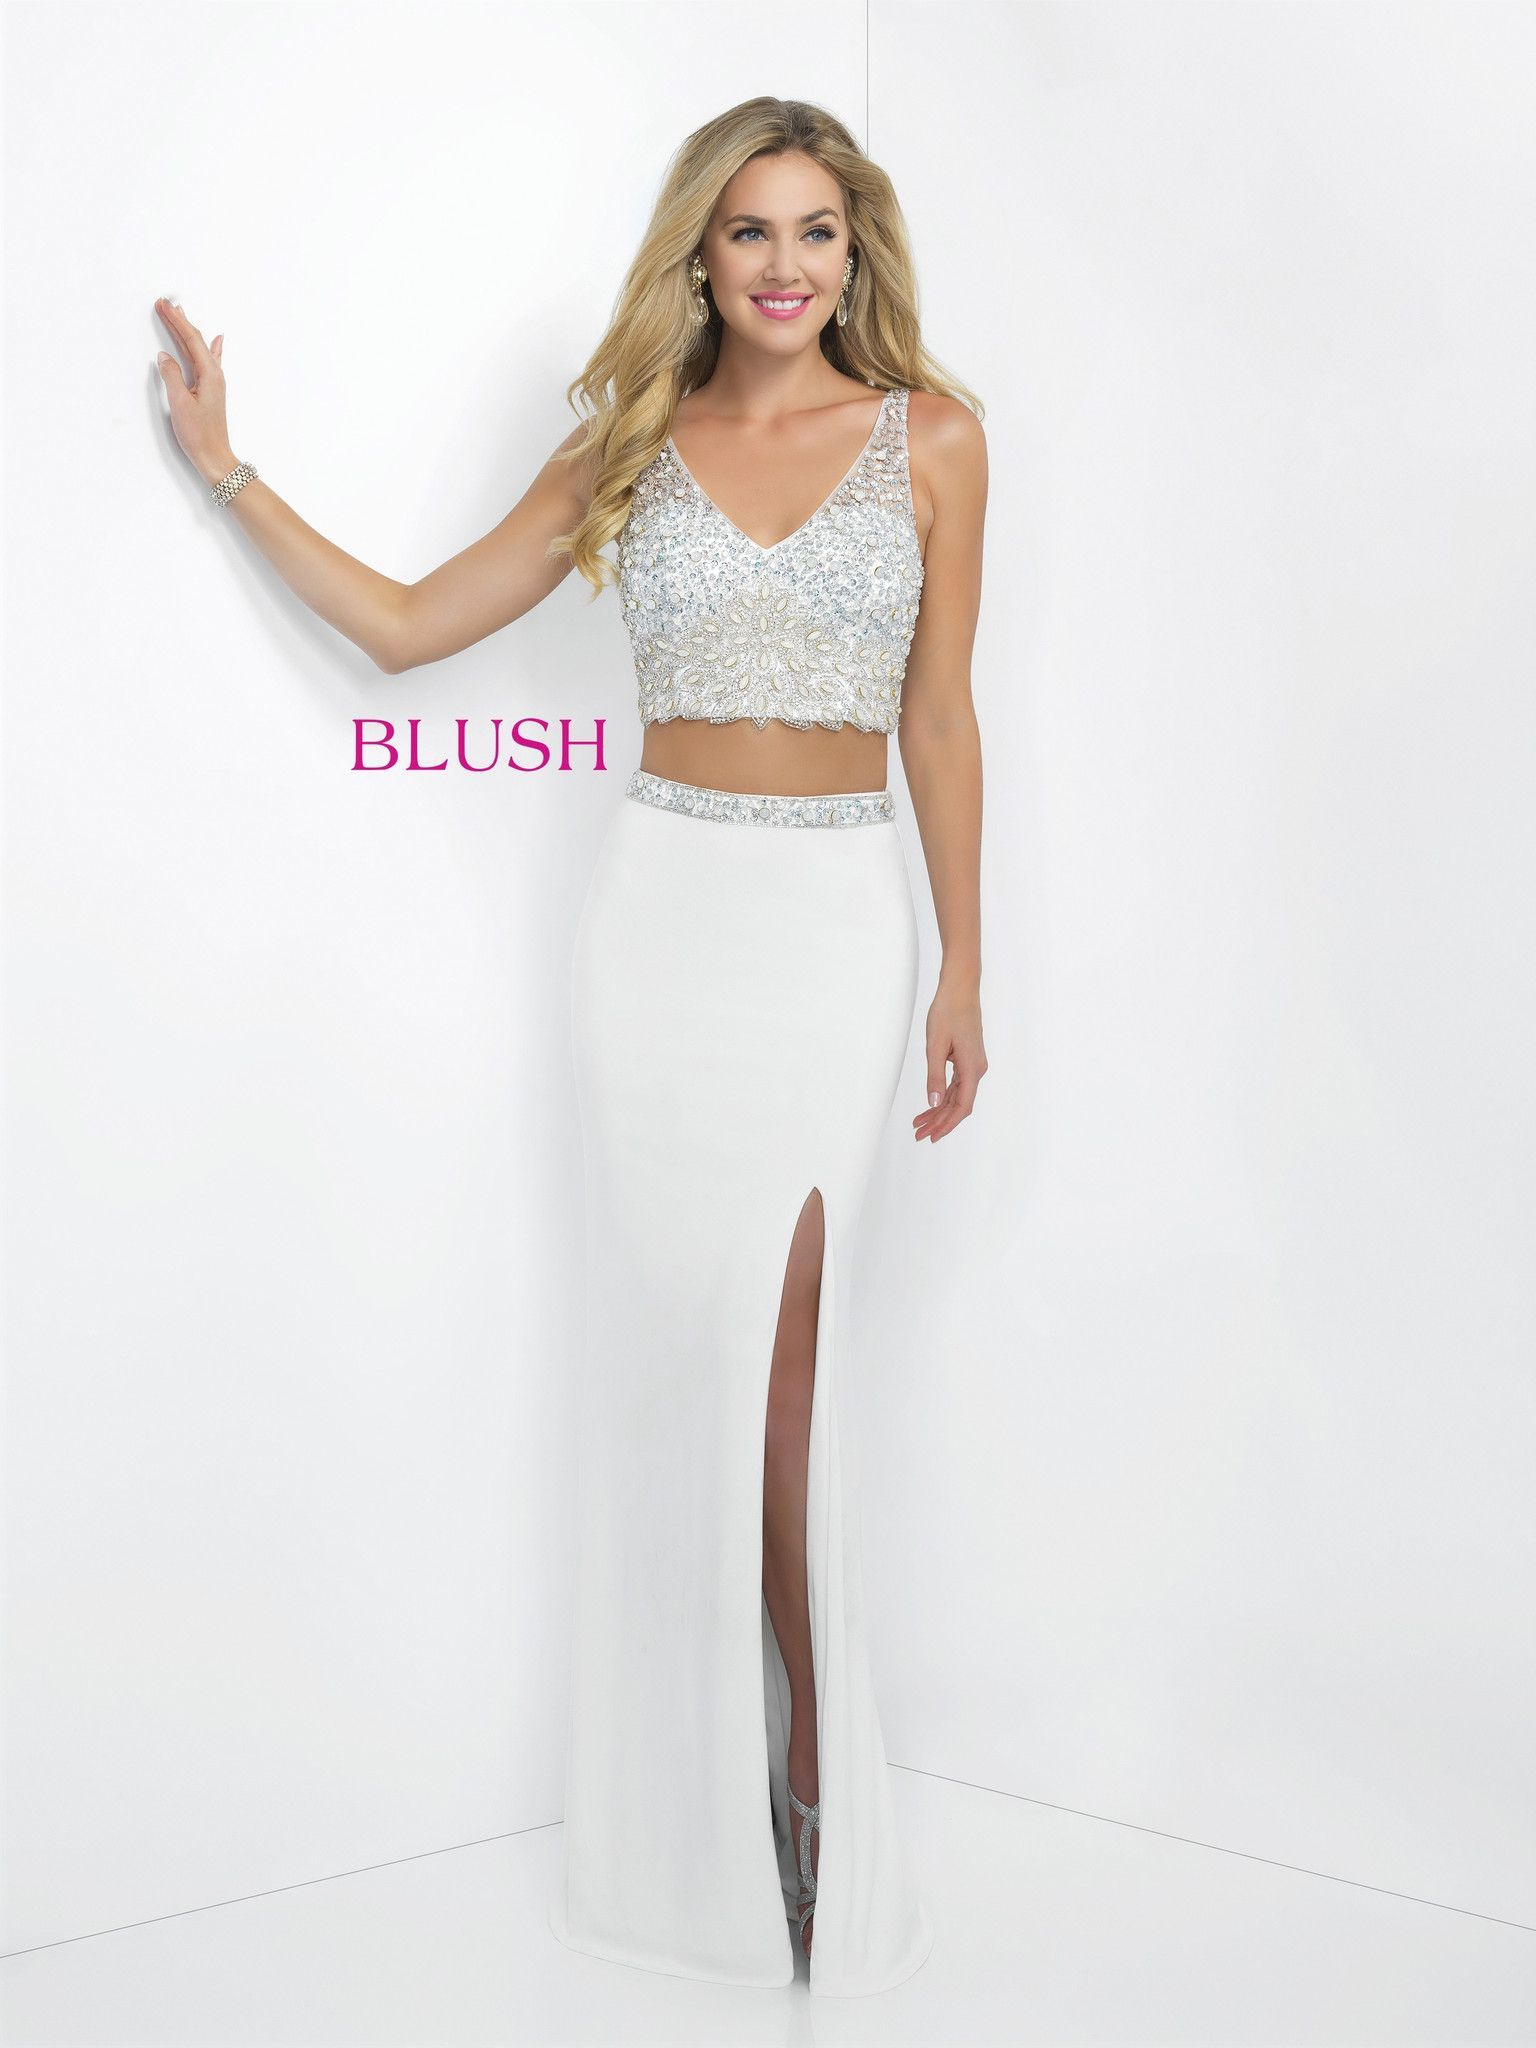 Blush prom off white style pinterest blush prom prom